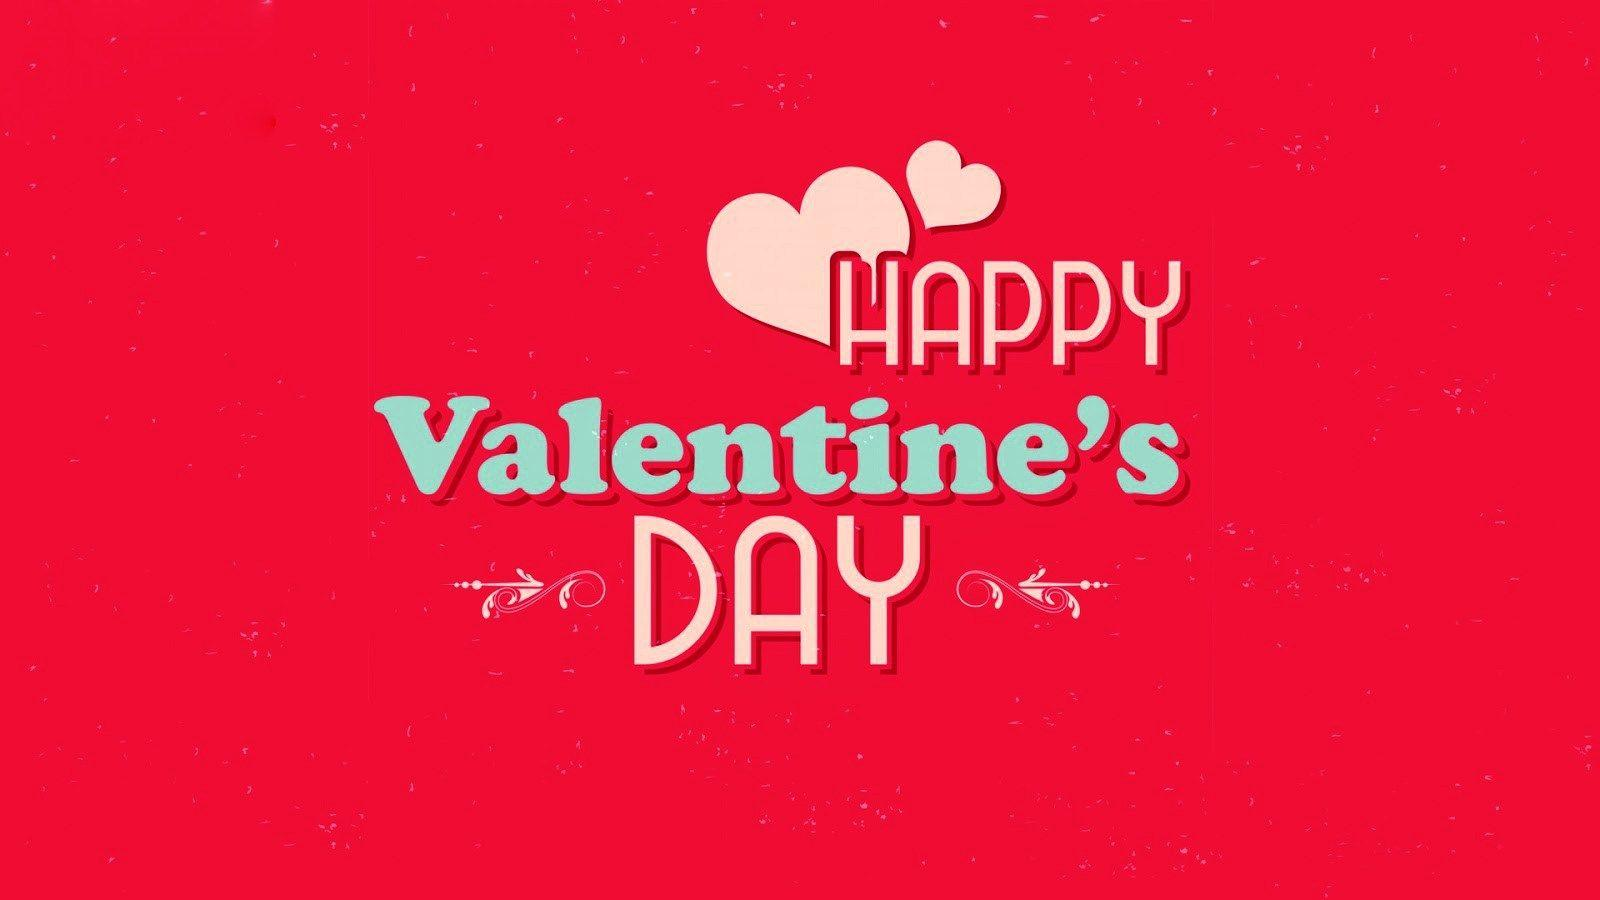 Valentines Day Quotes Archives - Happy Valentines Day 2018 Images ...